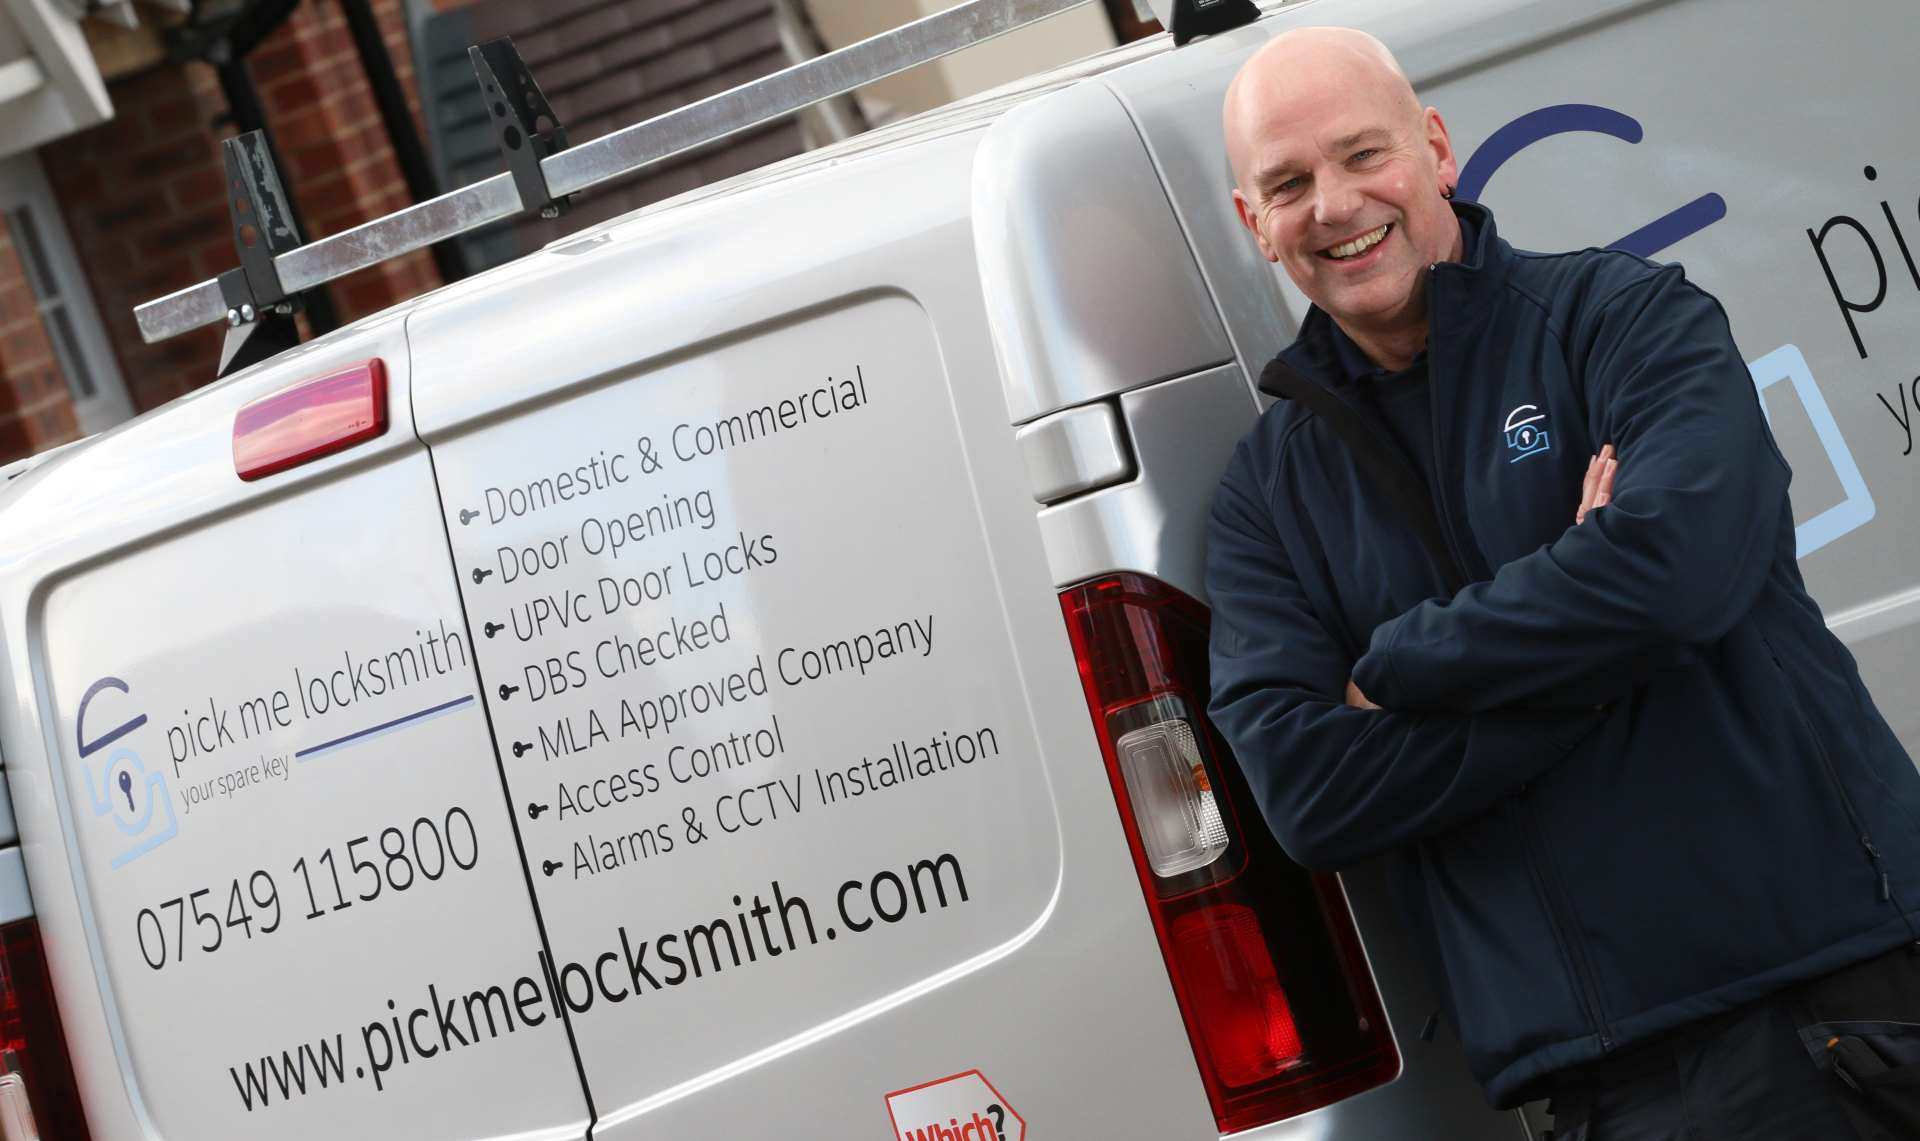 Locksmith Solihull - Steve Brown - UPVC - Access Control Systems - Alarms Fitter - CCTV Installer - Emergencies